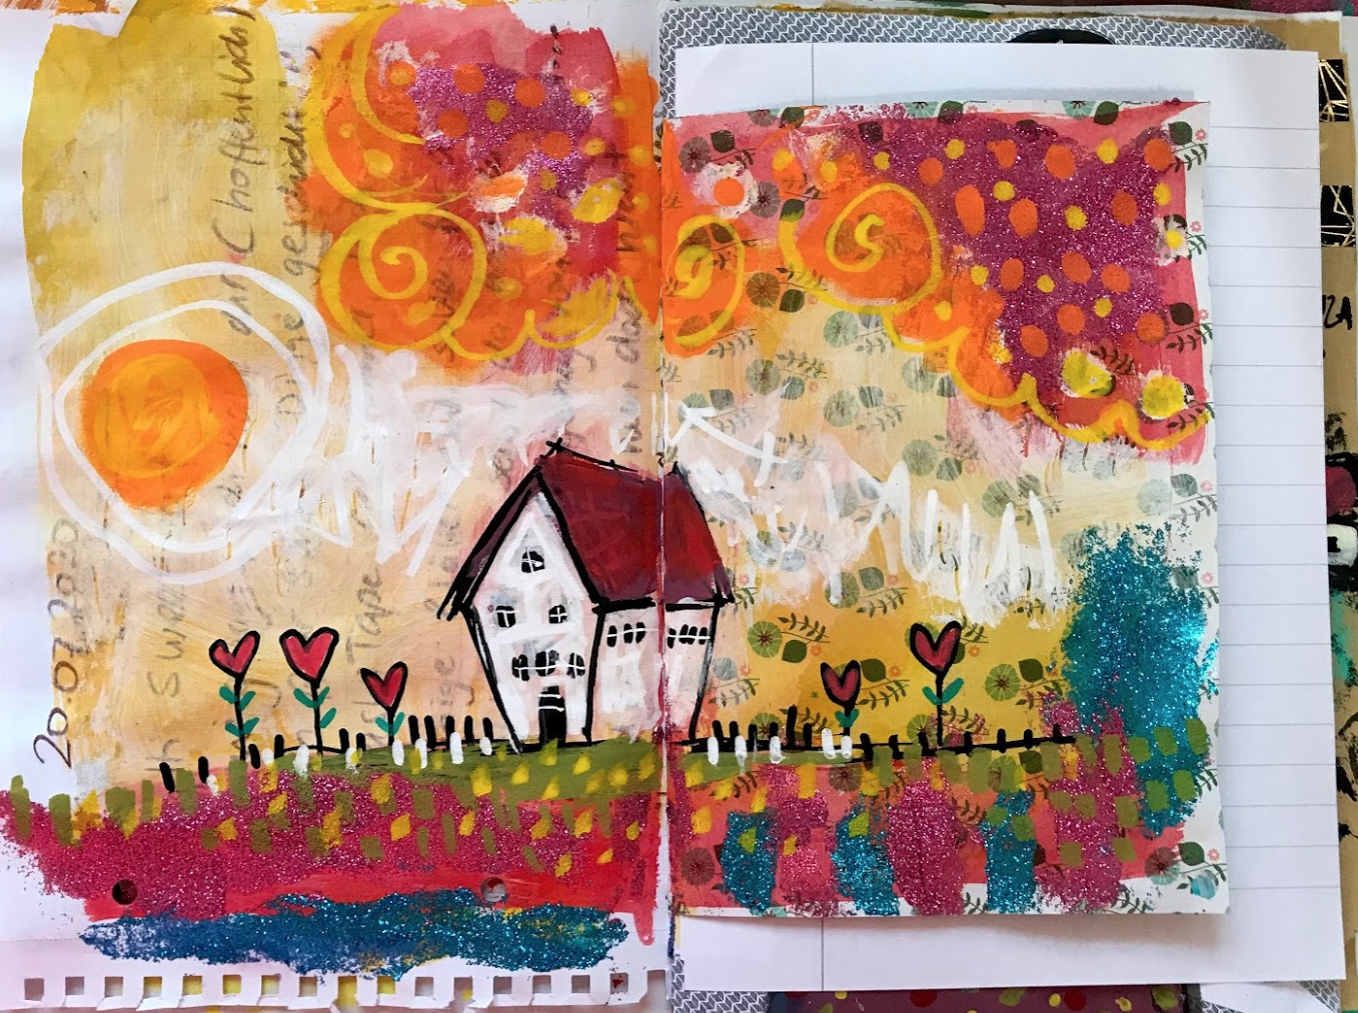 Junk journal workshop